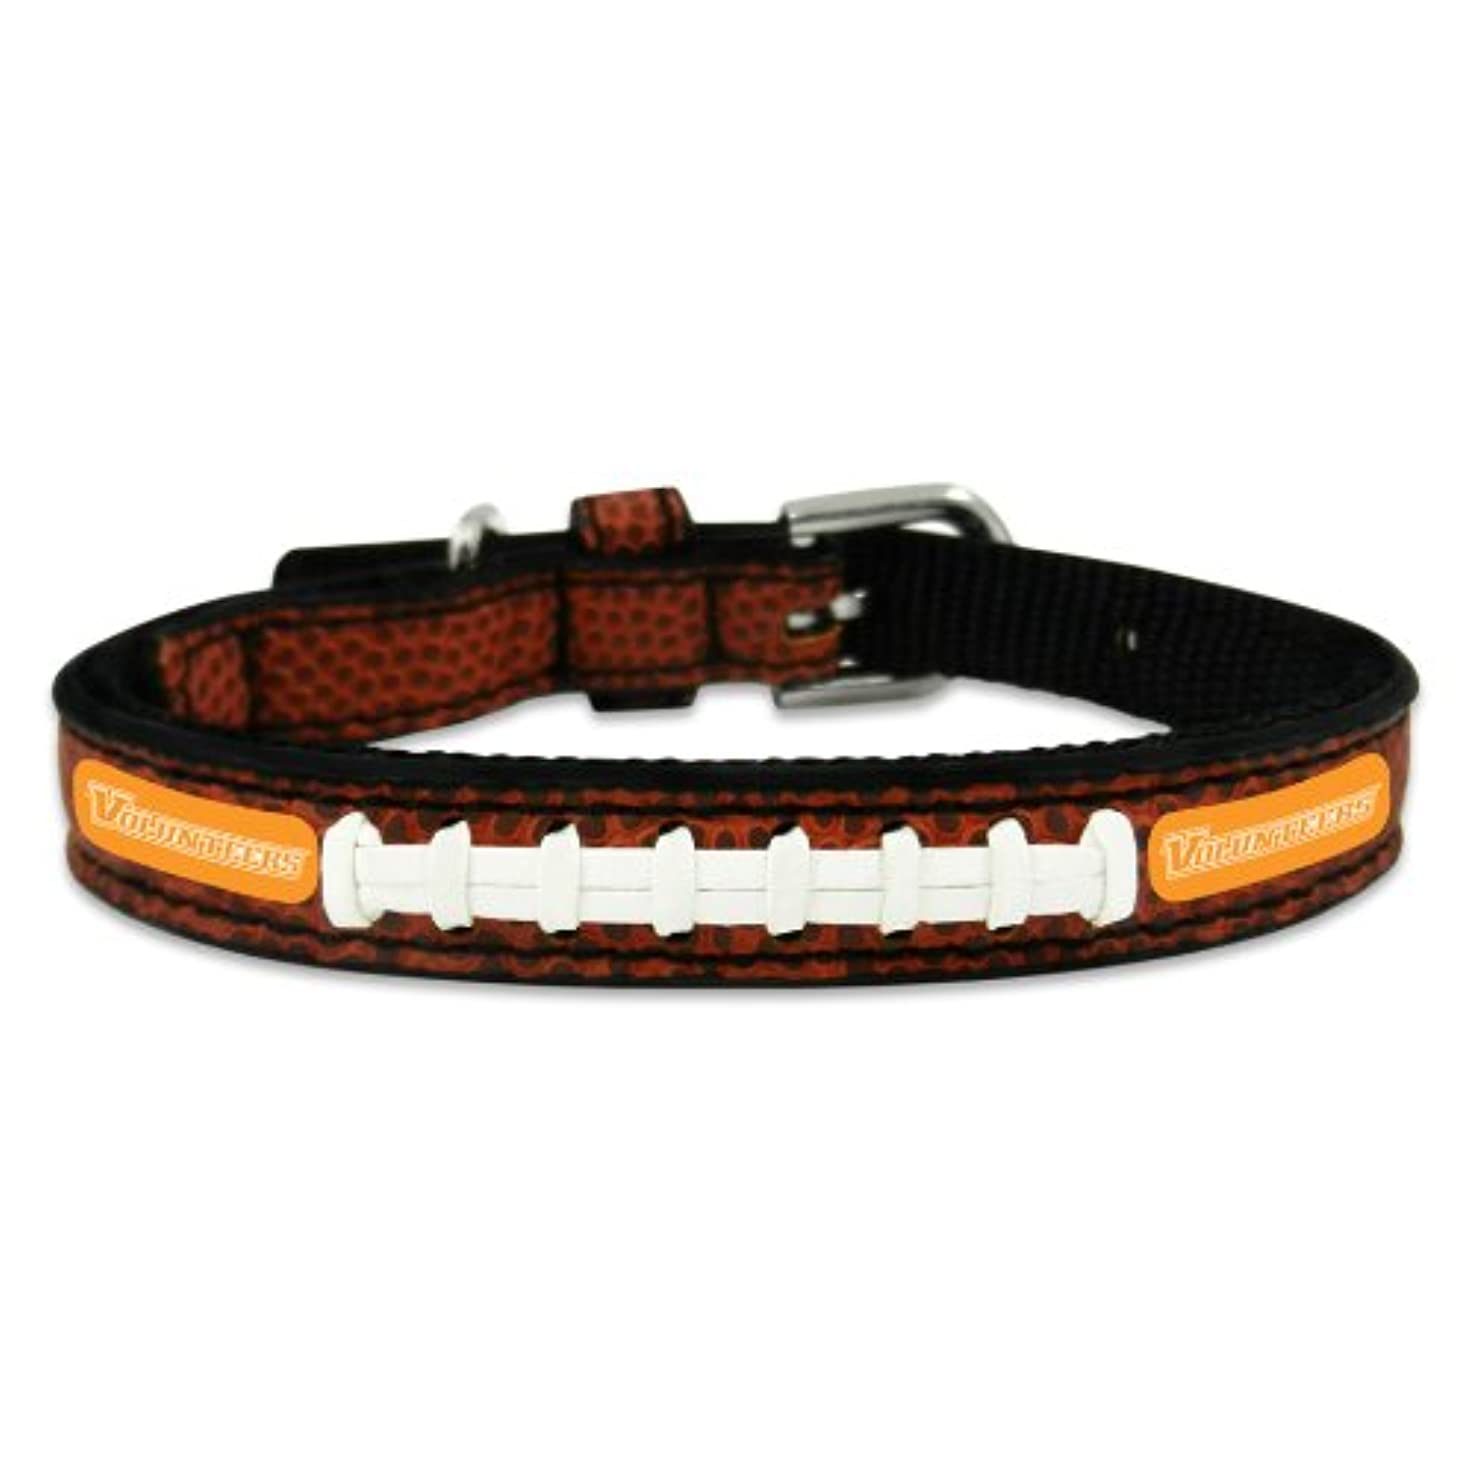 Tennessee Volunteers Classic Leather Toy Football Collar